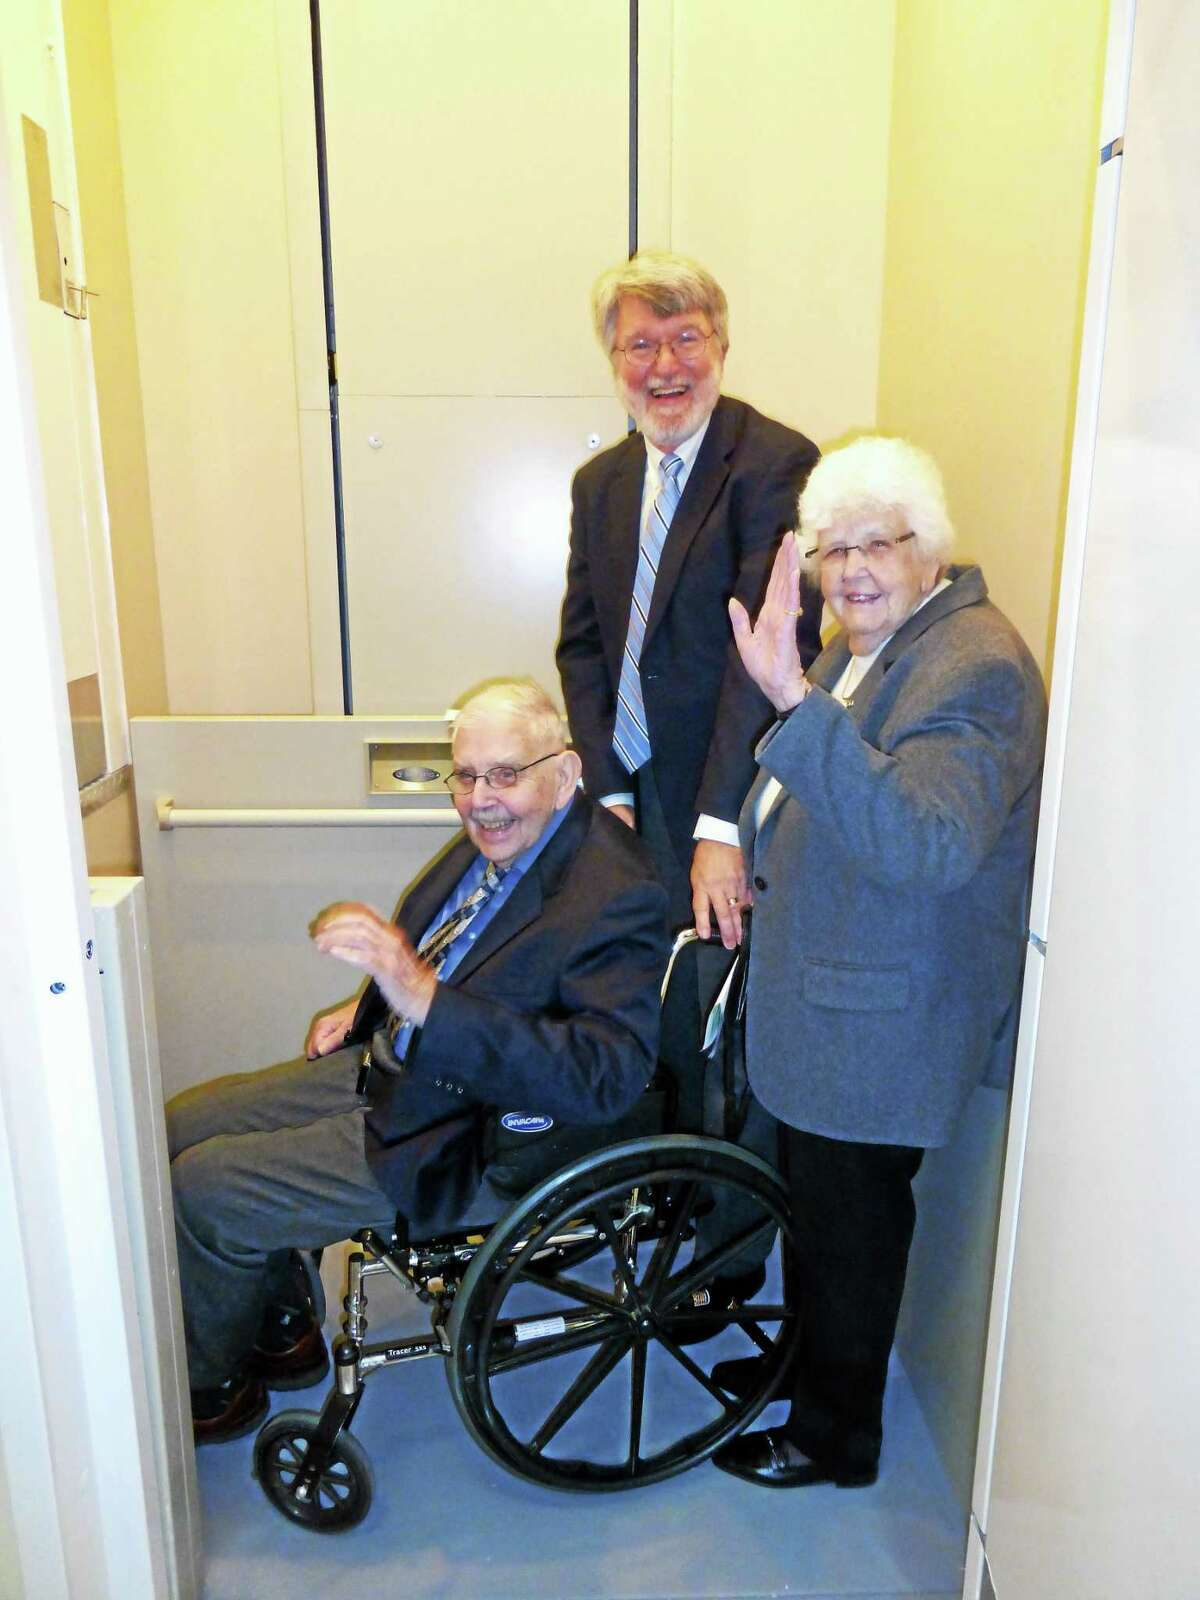 Karl Kregling, church moderator, with parishioners Dorothy and Robert Marshall, whose generous donation from their sister's memorial fund made elevator/project possible